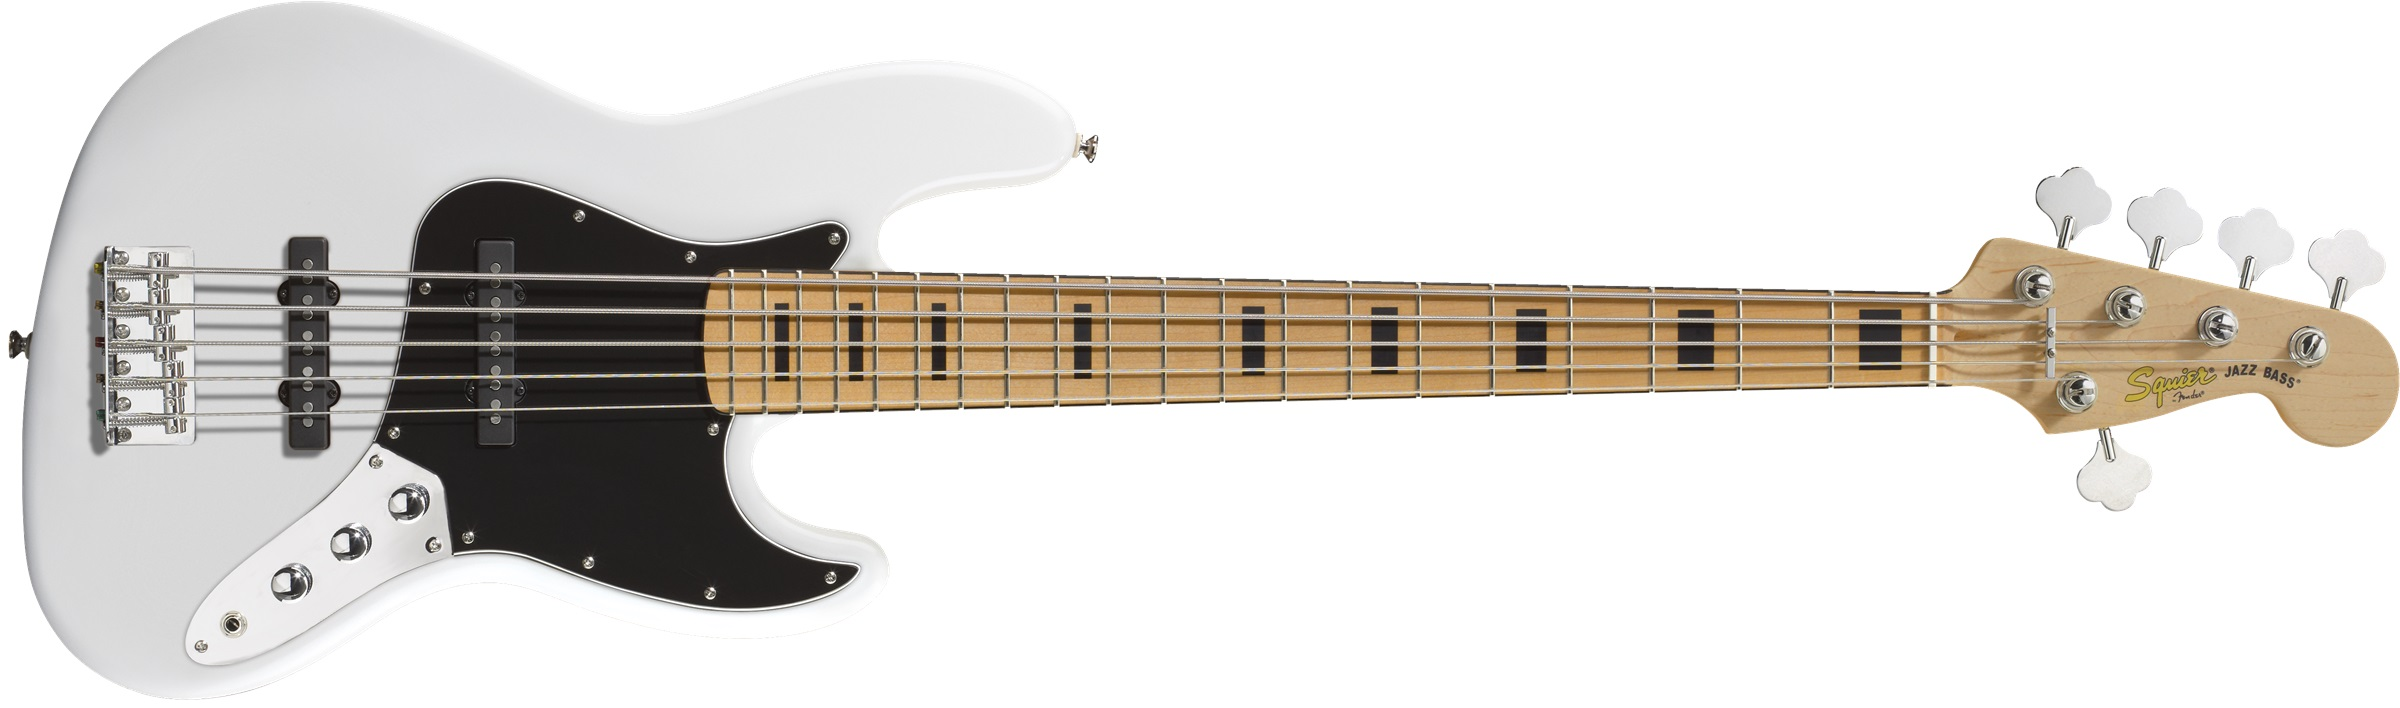 Fender Squier Vintage Modified Jazz Bass V MN OW